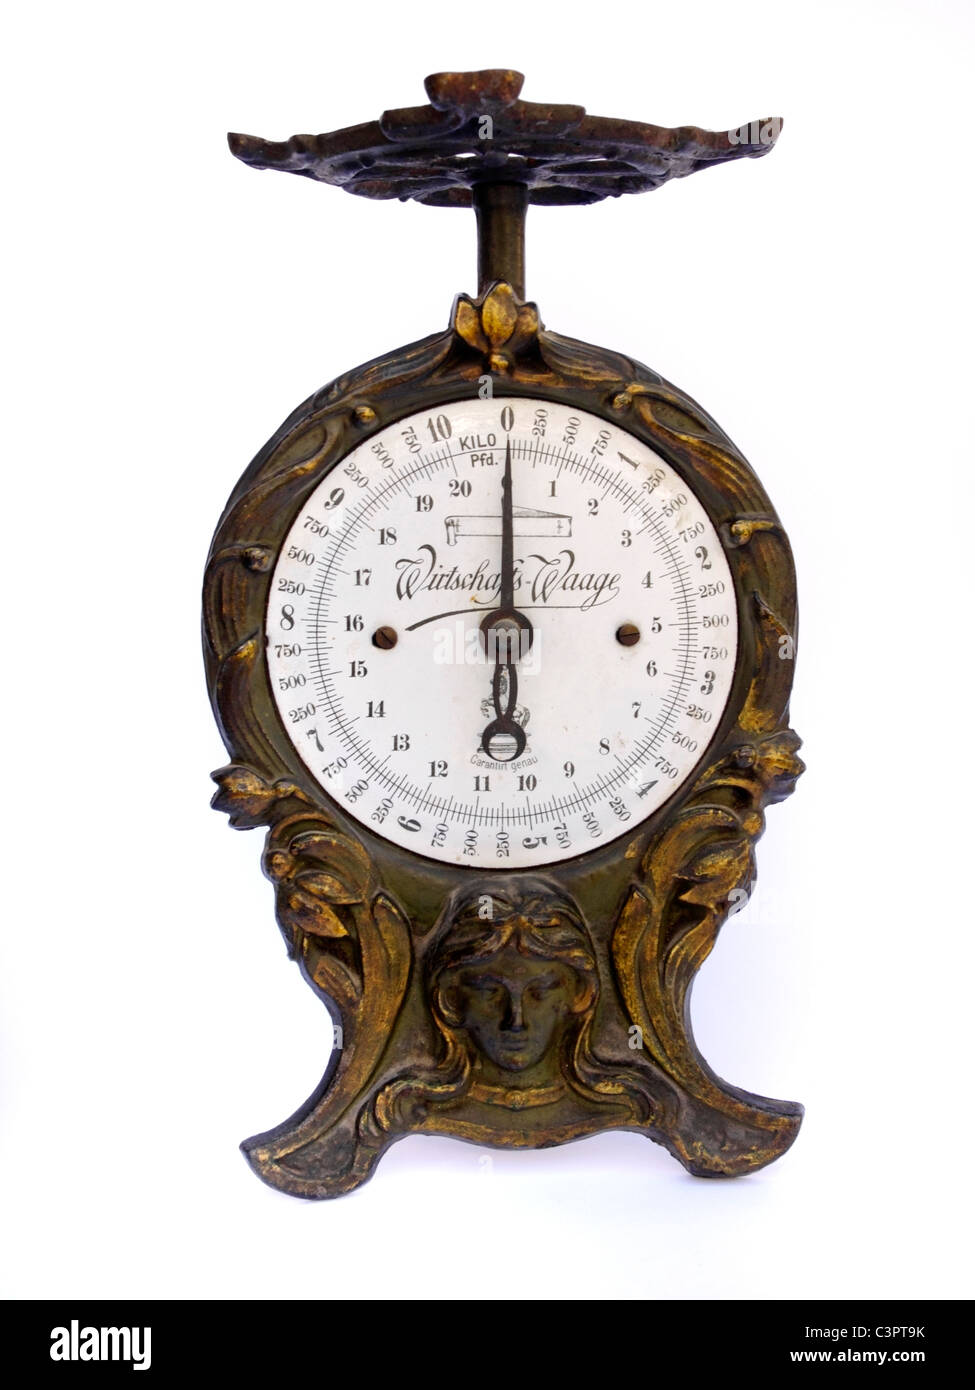 Antique household scale - Stock Image